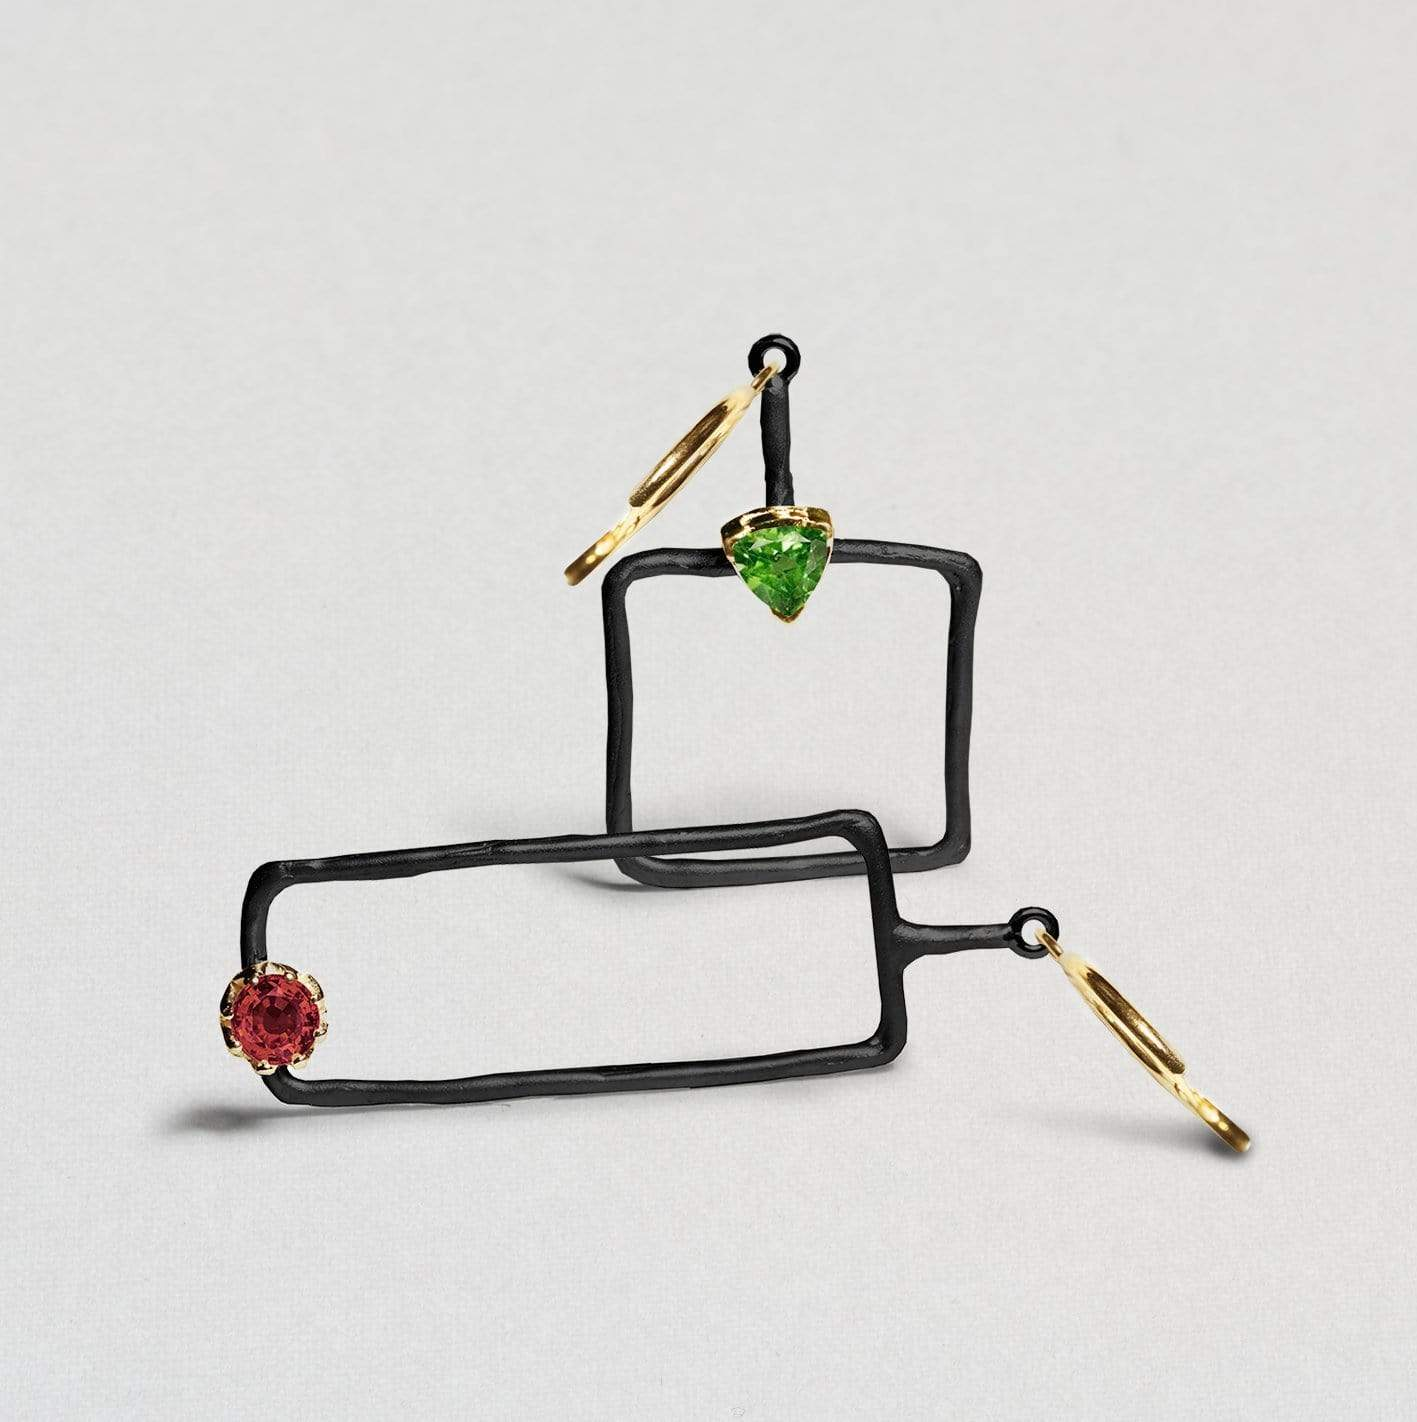 Mana Earrings, Anthracite, black, Garnet, Gold, Peridot, Serial, spo-disabled, StoneColor:Green, StoneColor:Red Earrings